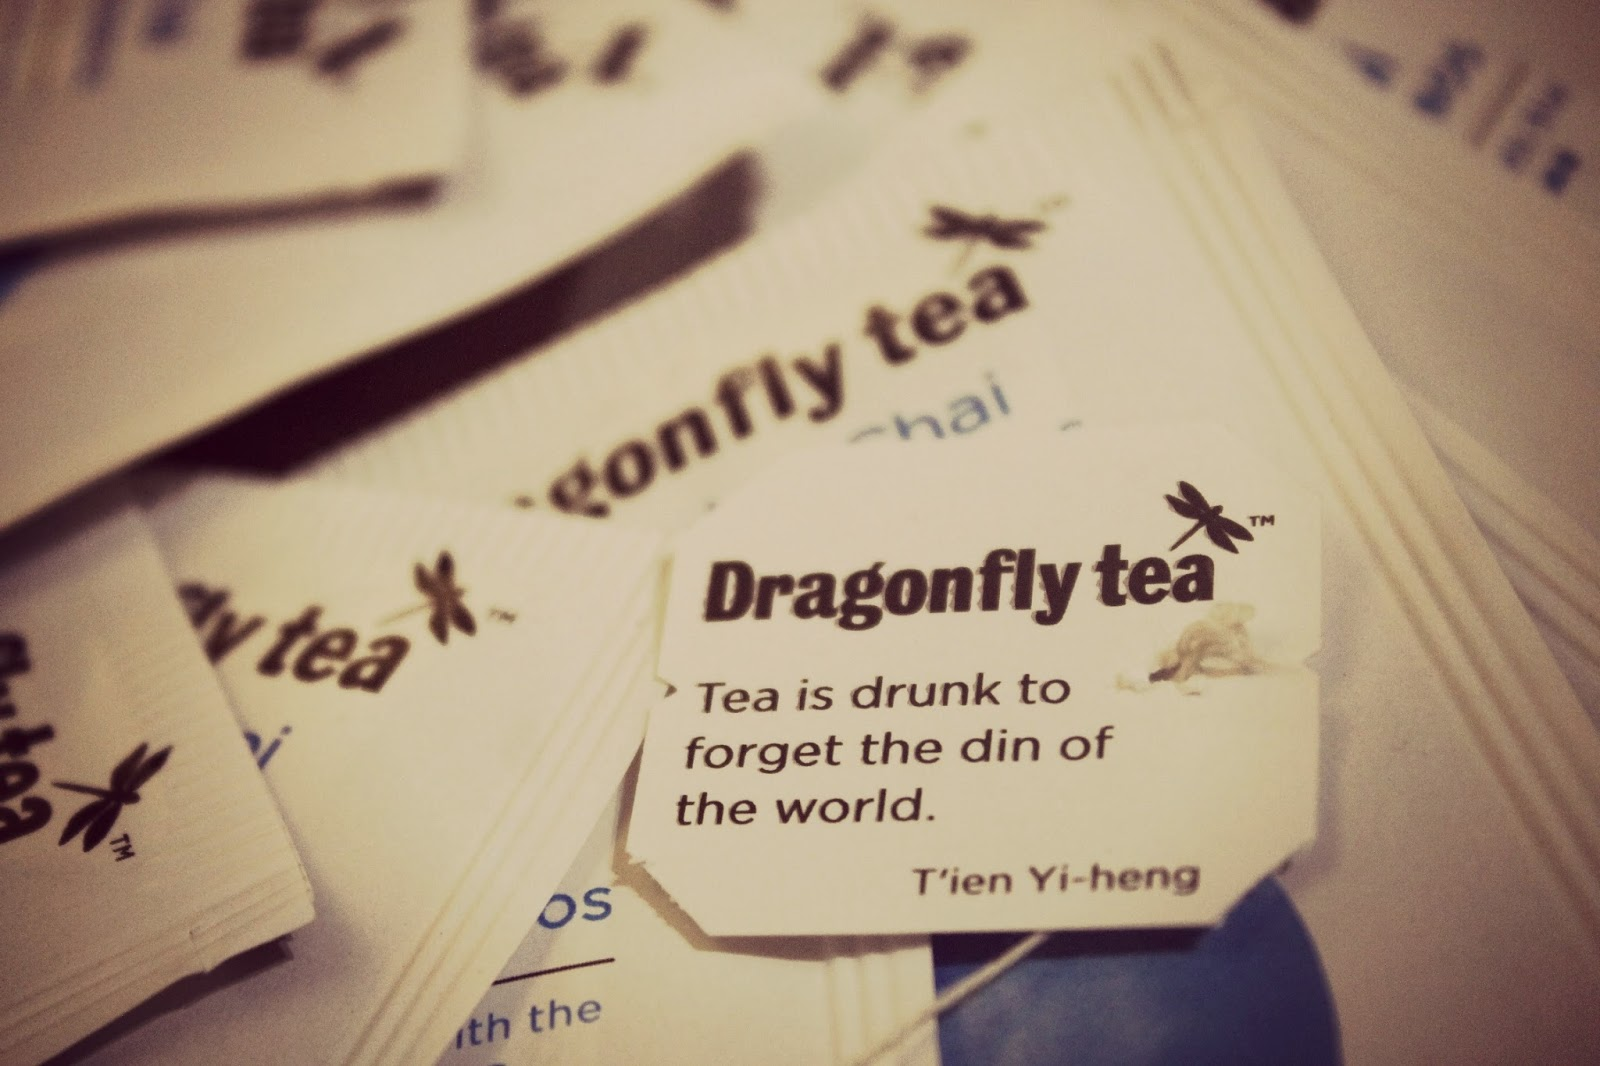 Dragonfly tea bags